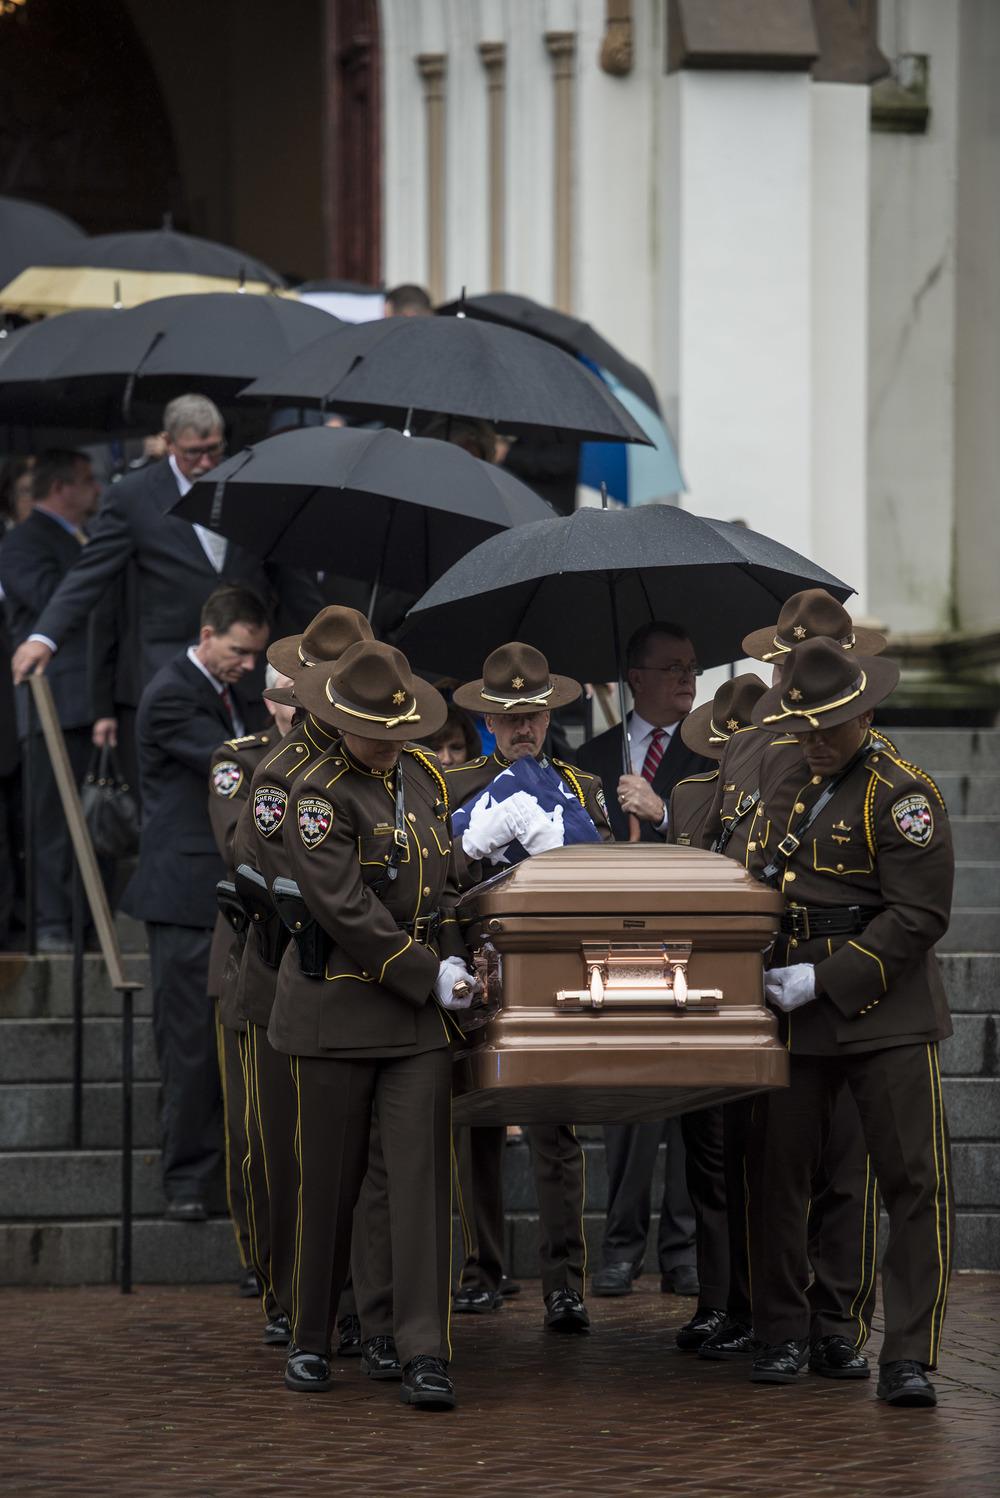 The honor guard leaves the Cathedral of St. John the Baptist during the funeral for former Sheriff Al St Lawrence.